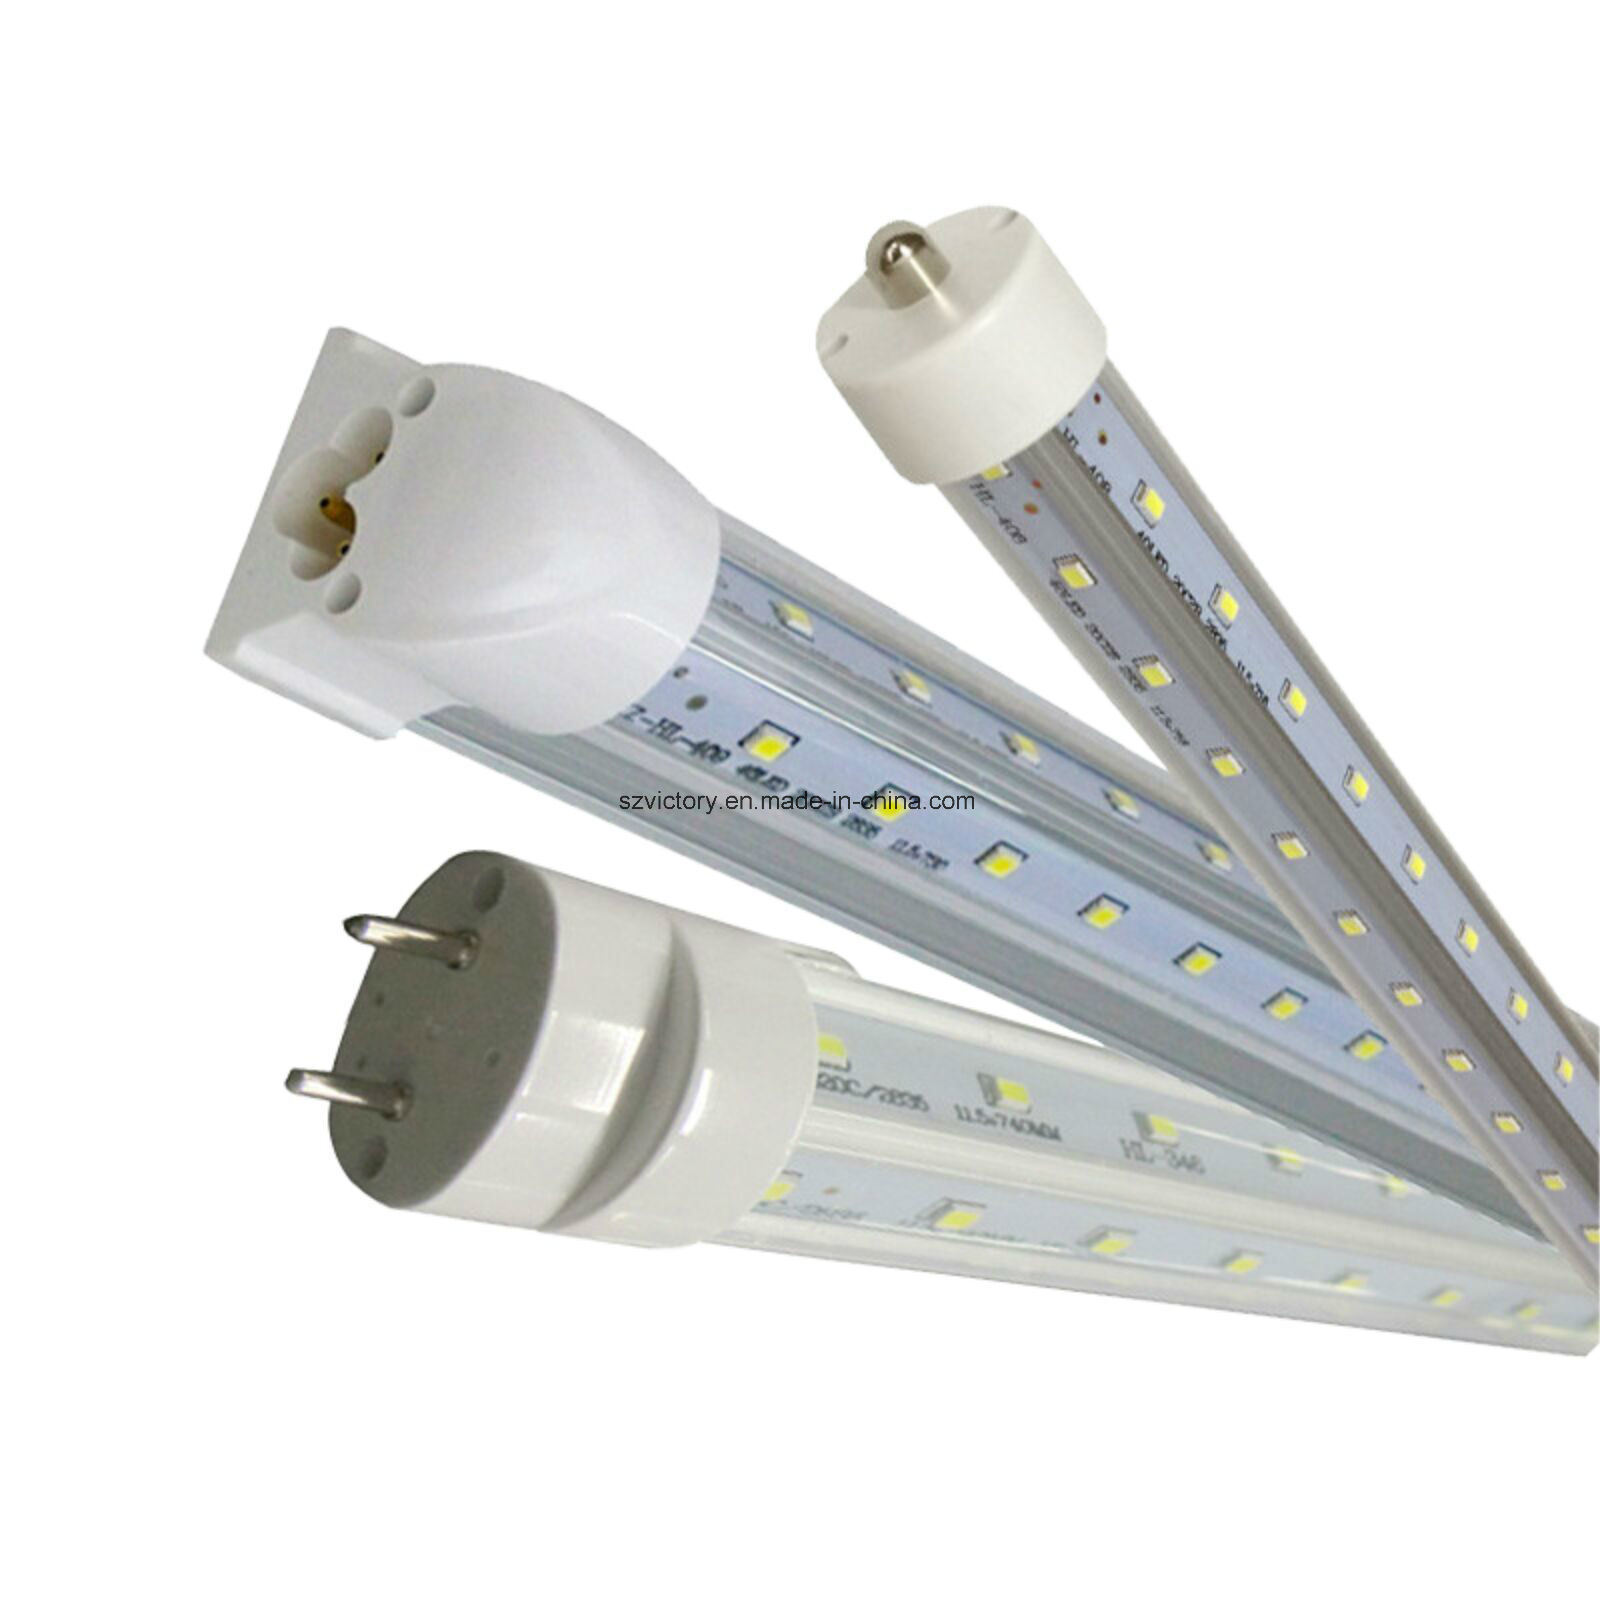 60W 8FT LED Tube Light Fixture V Shape UL cUL Daylight T8 LED Tube 270 Degree Beam Angle